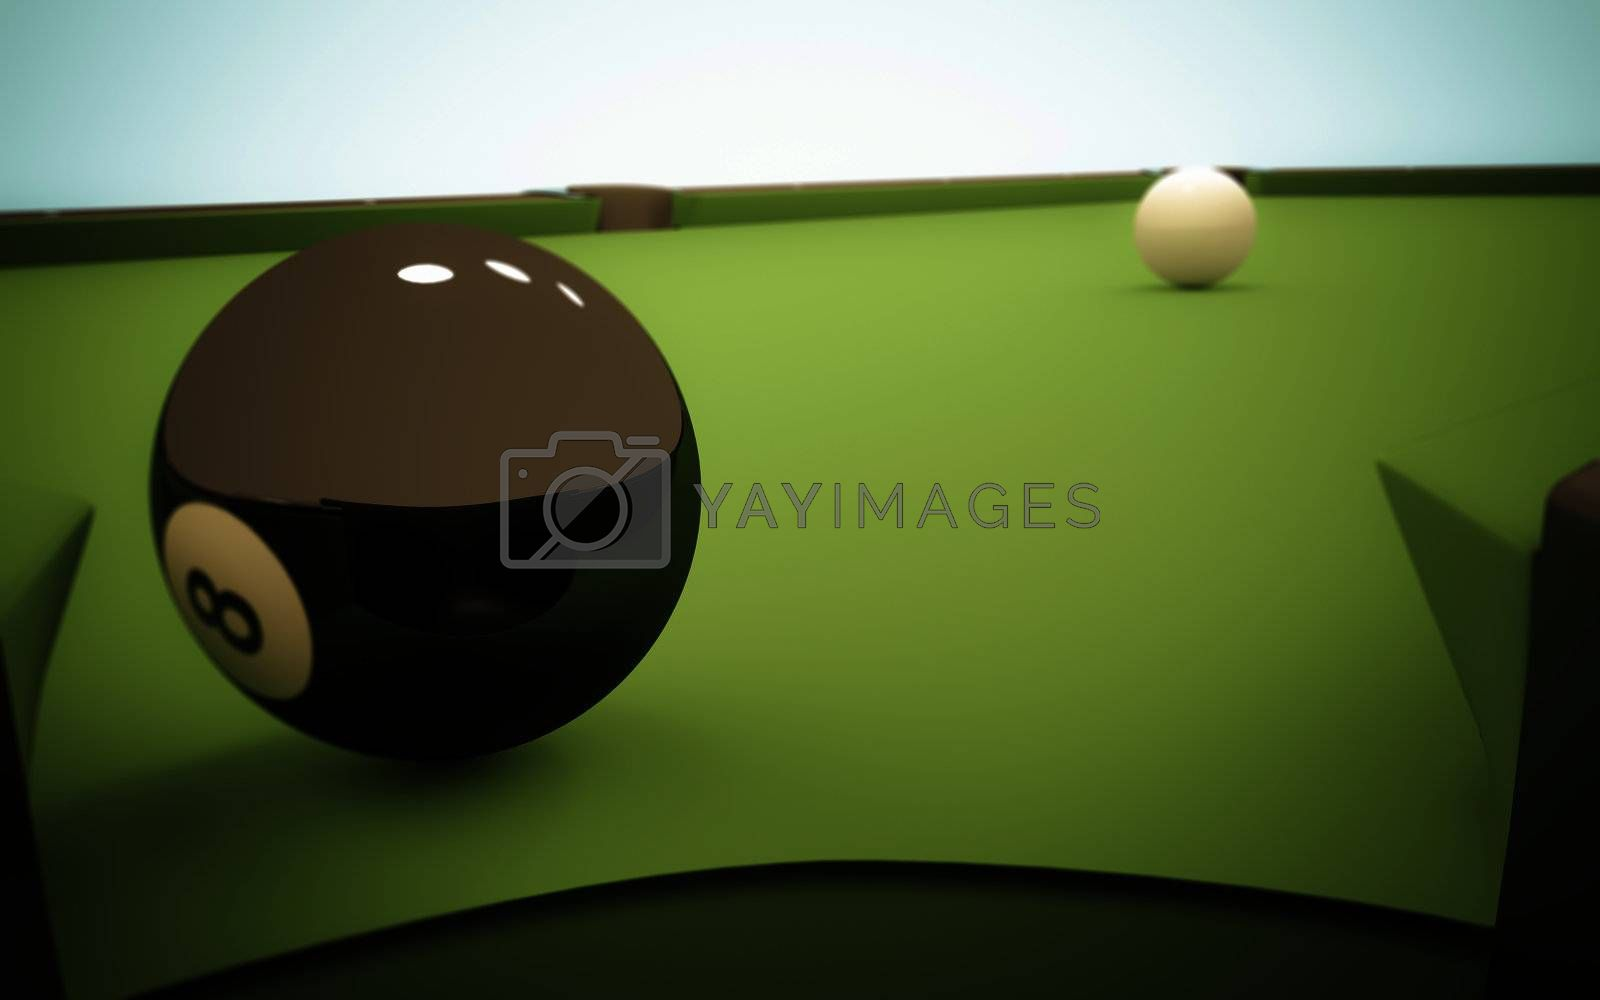 A white ball in the center of a pool table and the 8 ball near the corner pocket, viewed from within the pocket.